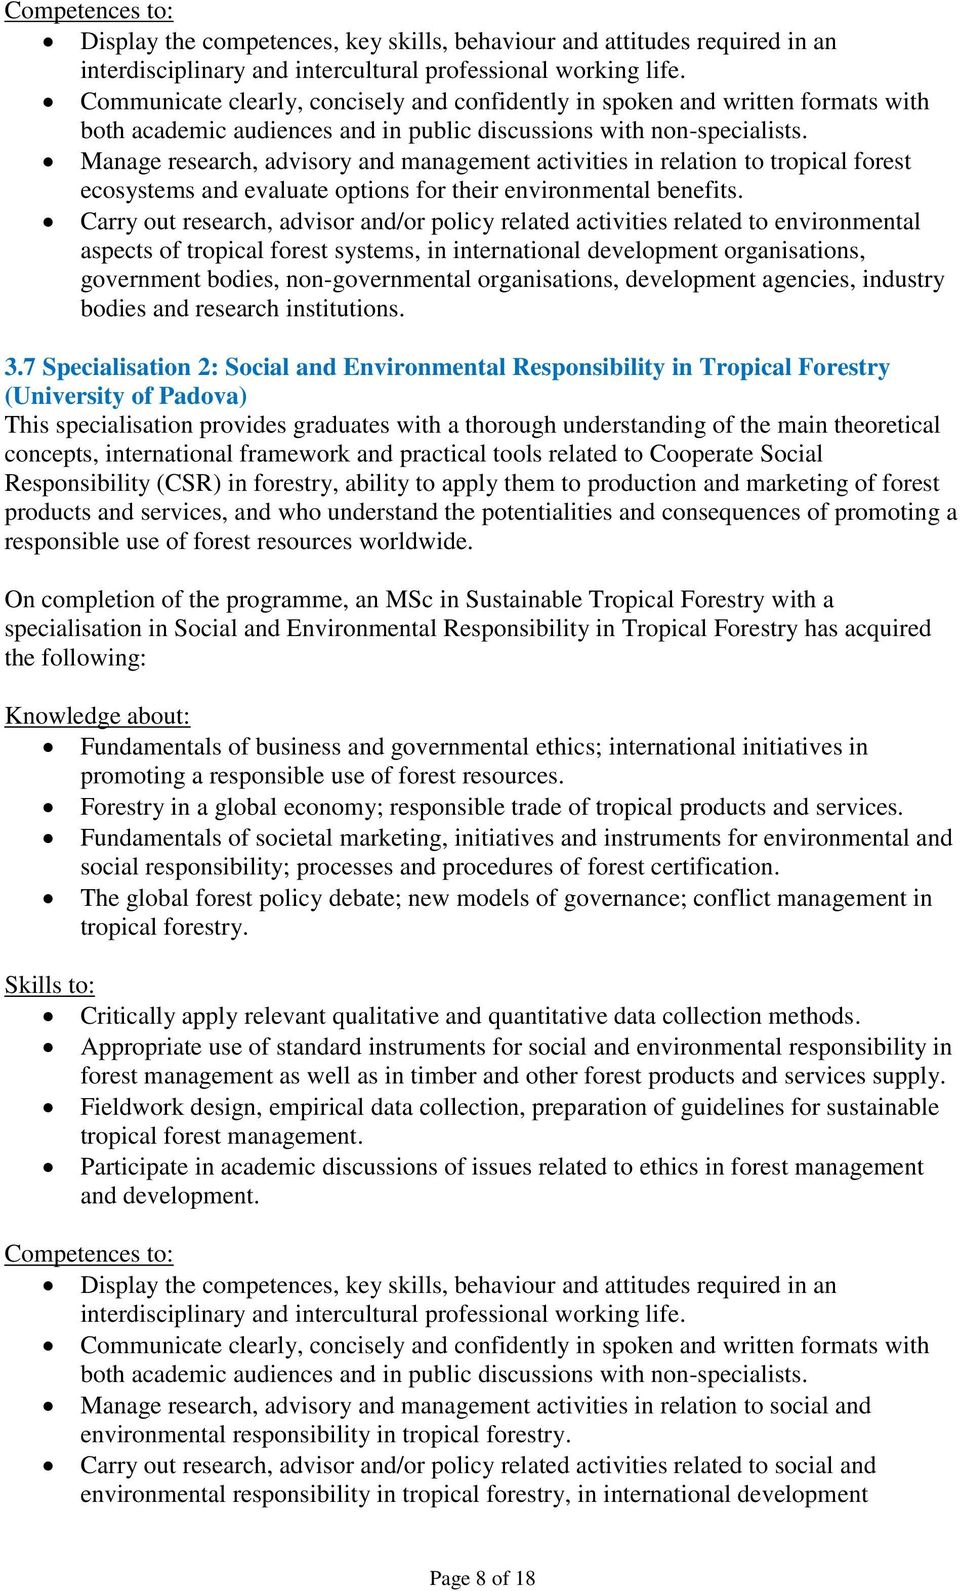 Manage research, advisory and management activities in relation to tropical forest ecosystems and evaluate options for their environmental benefits.